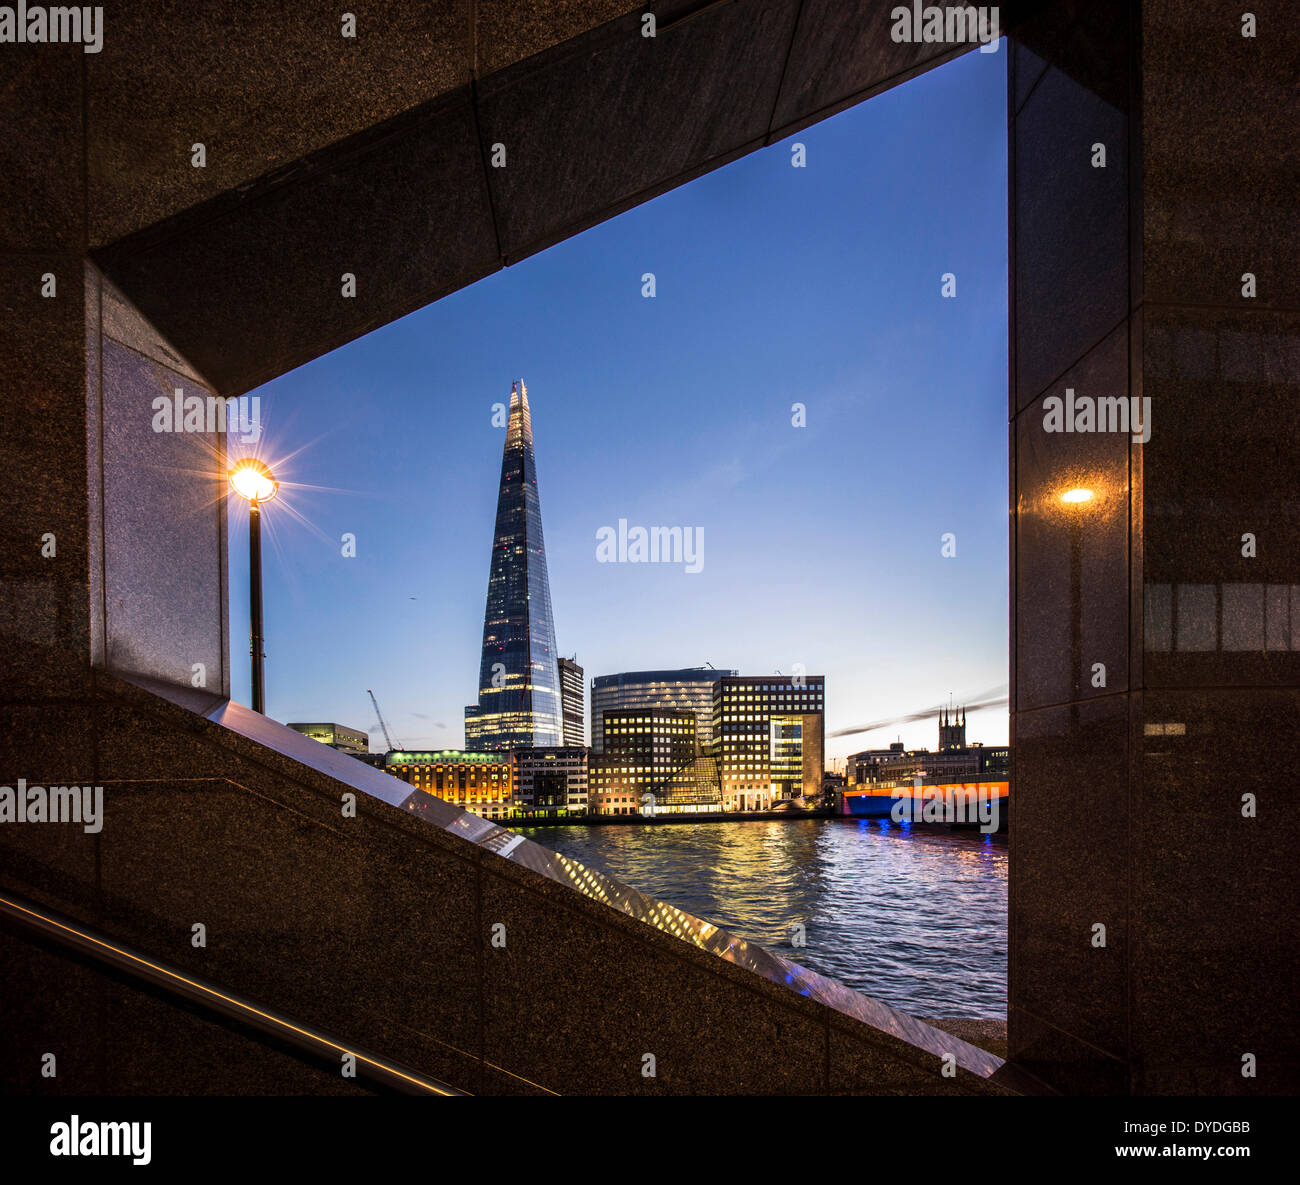 tower bridge stockfotos tower bridge bilder alamy. Black Bedroom Furniture Sets. Home Design Ideas